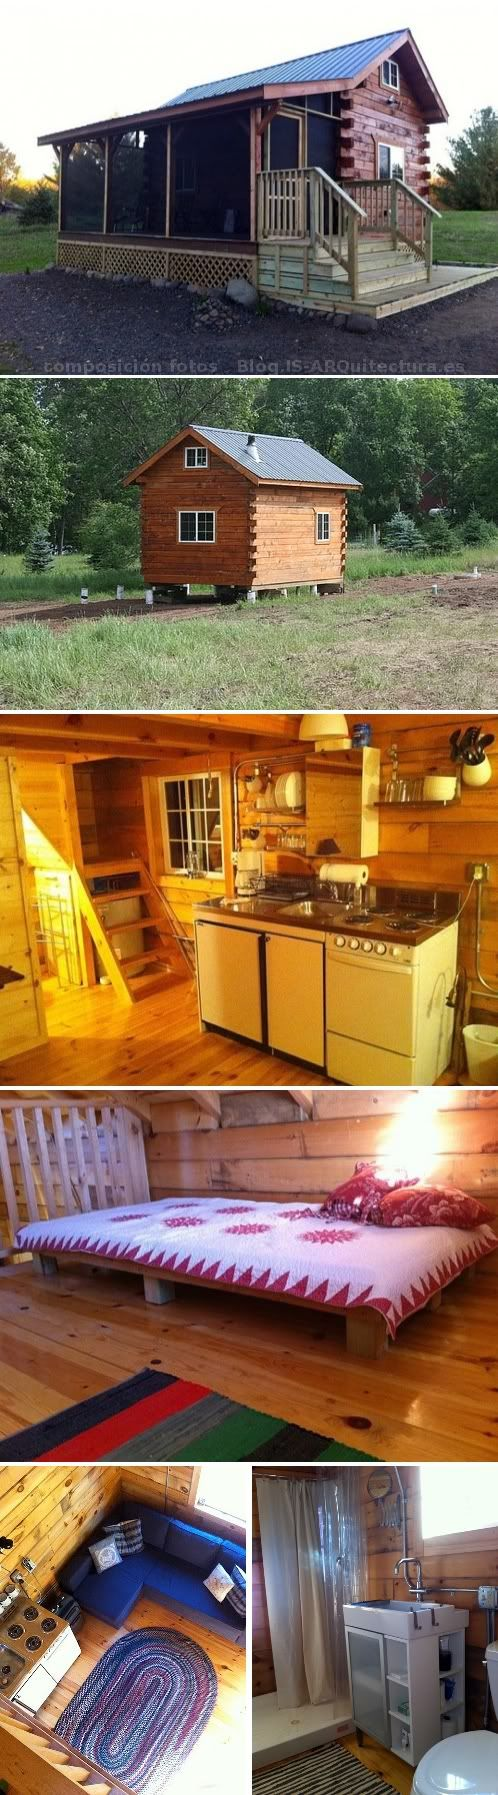 Tiny Log Cabin with Screened in Porch on a Budget